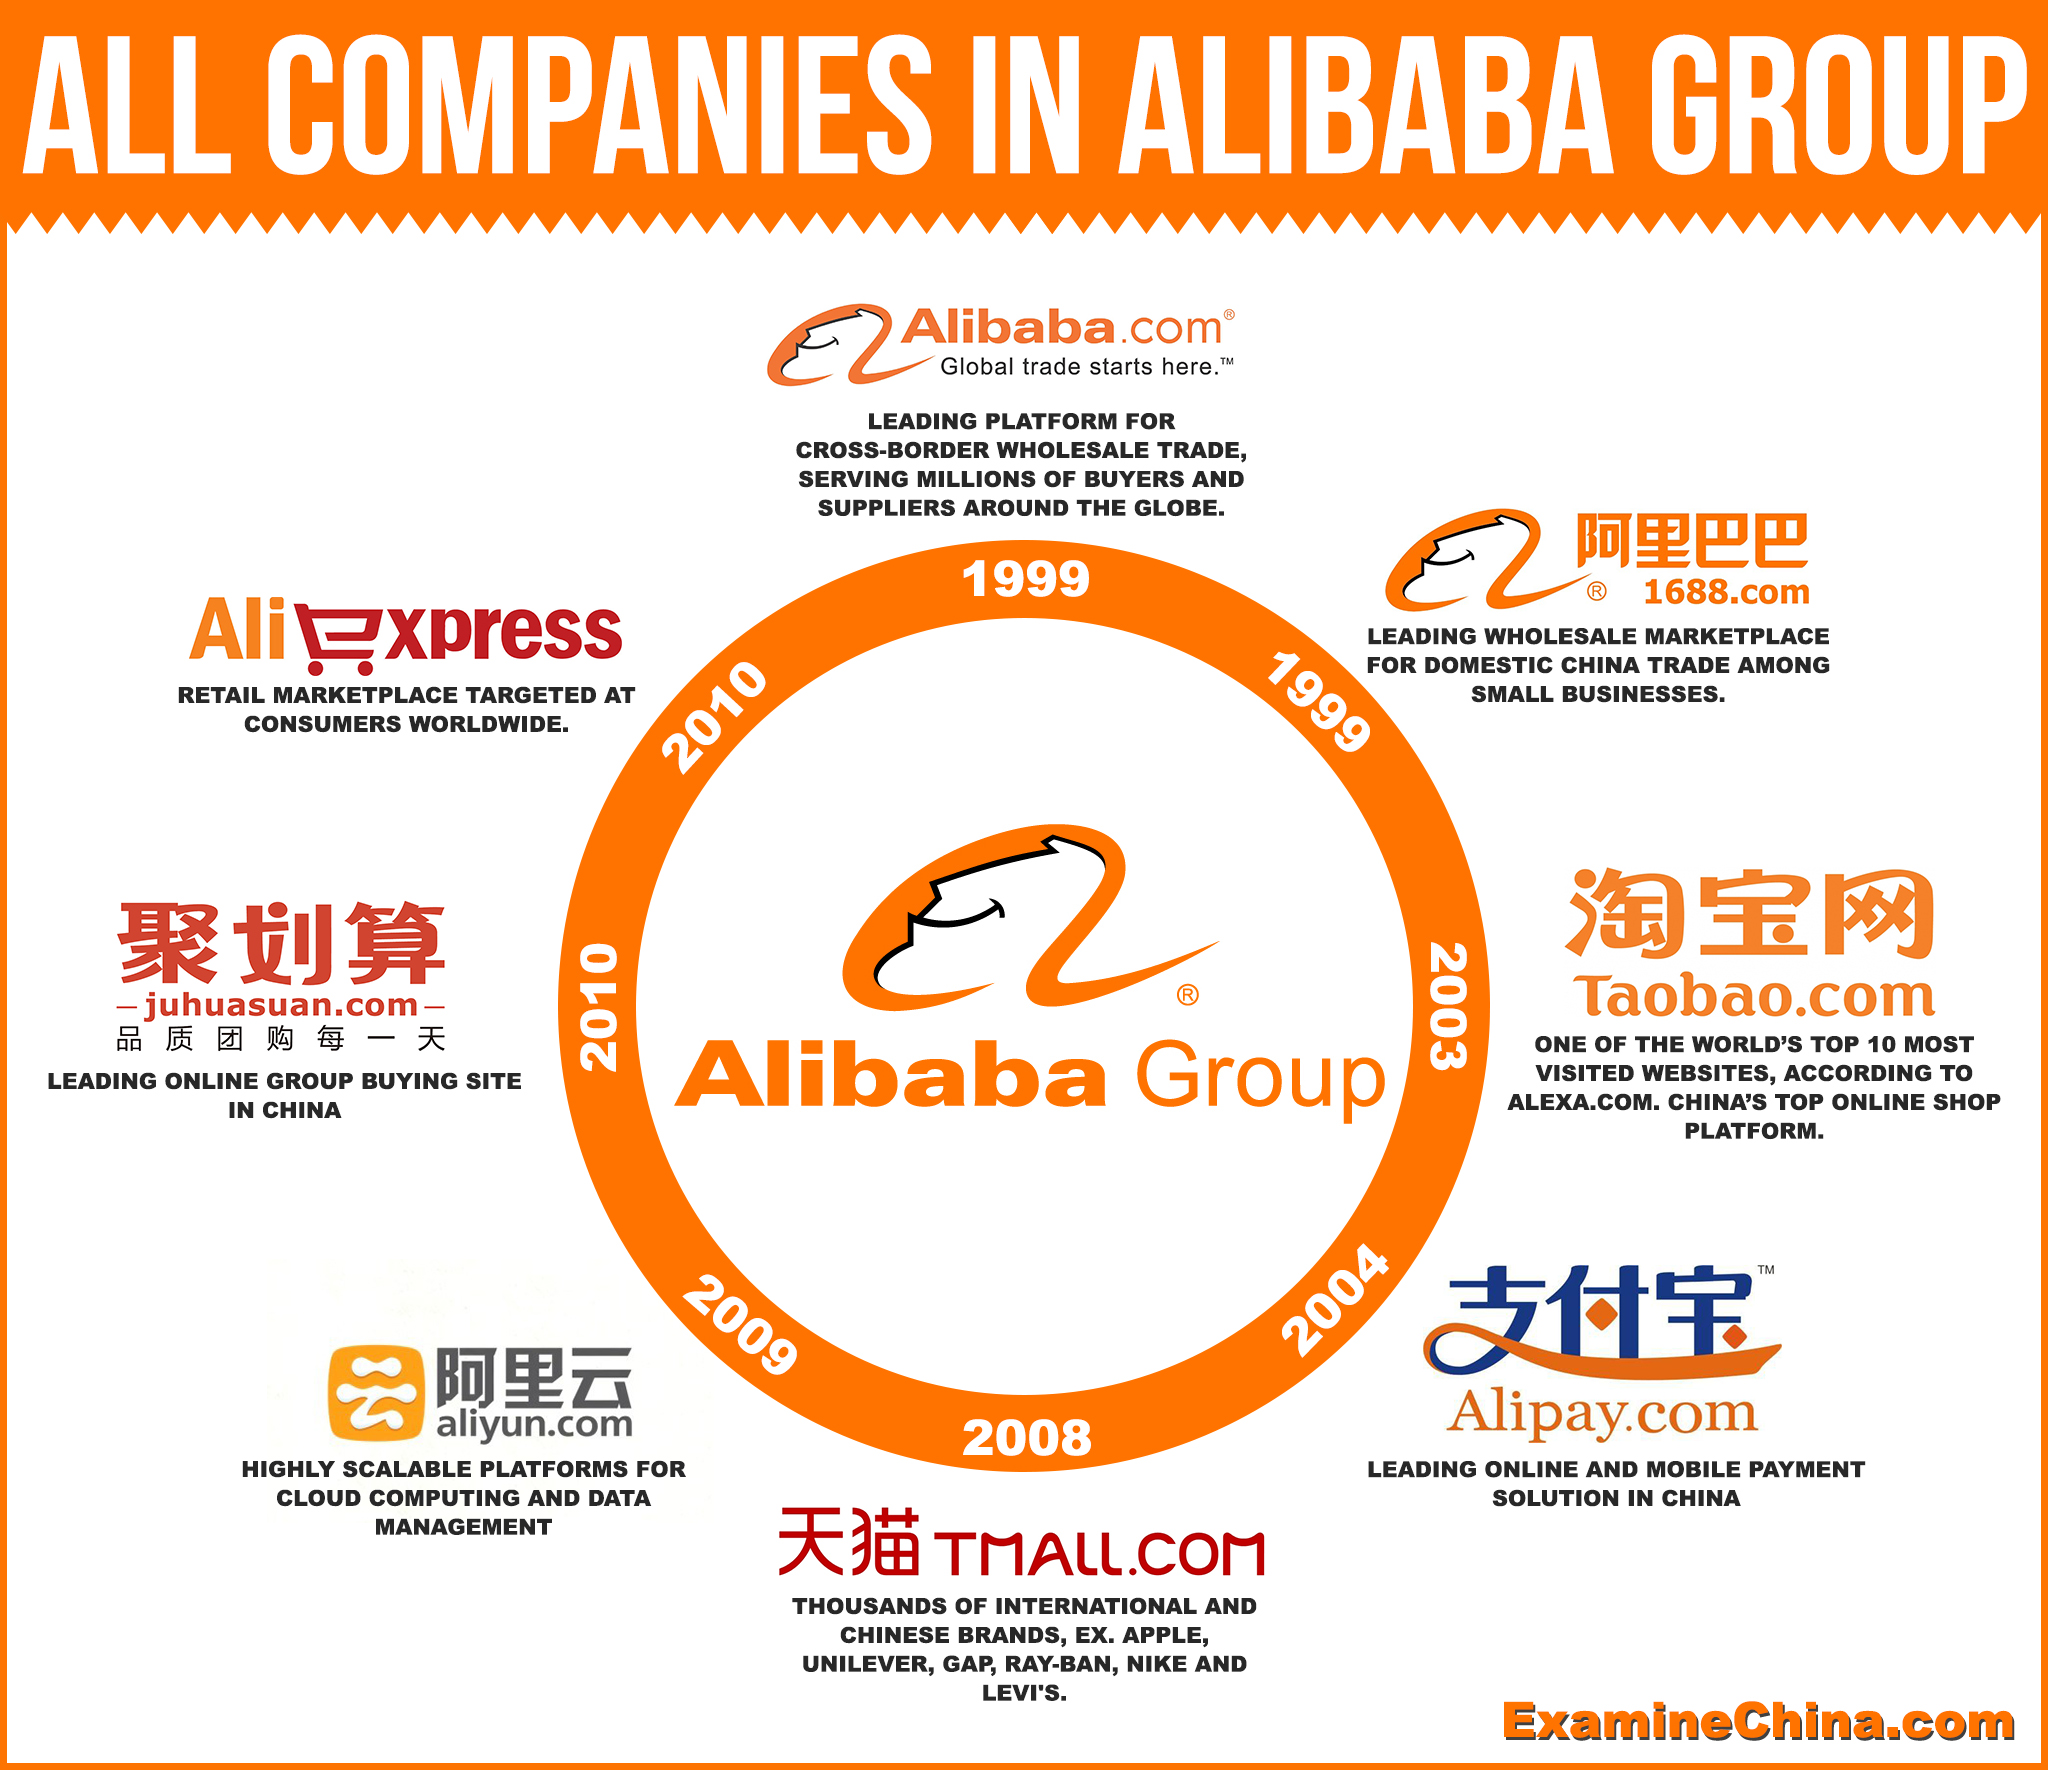 Alibaba Group Examinechina Com Blog The official corporate handle for alibaba group. examinechina